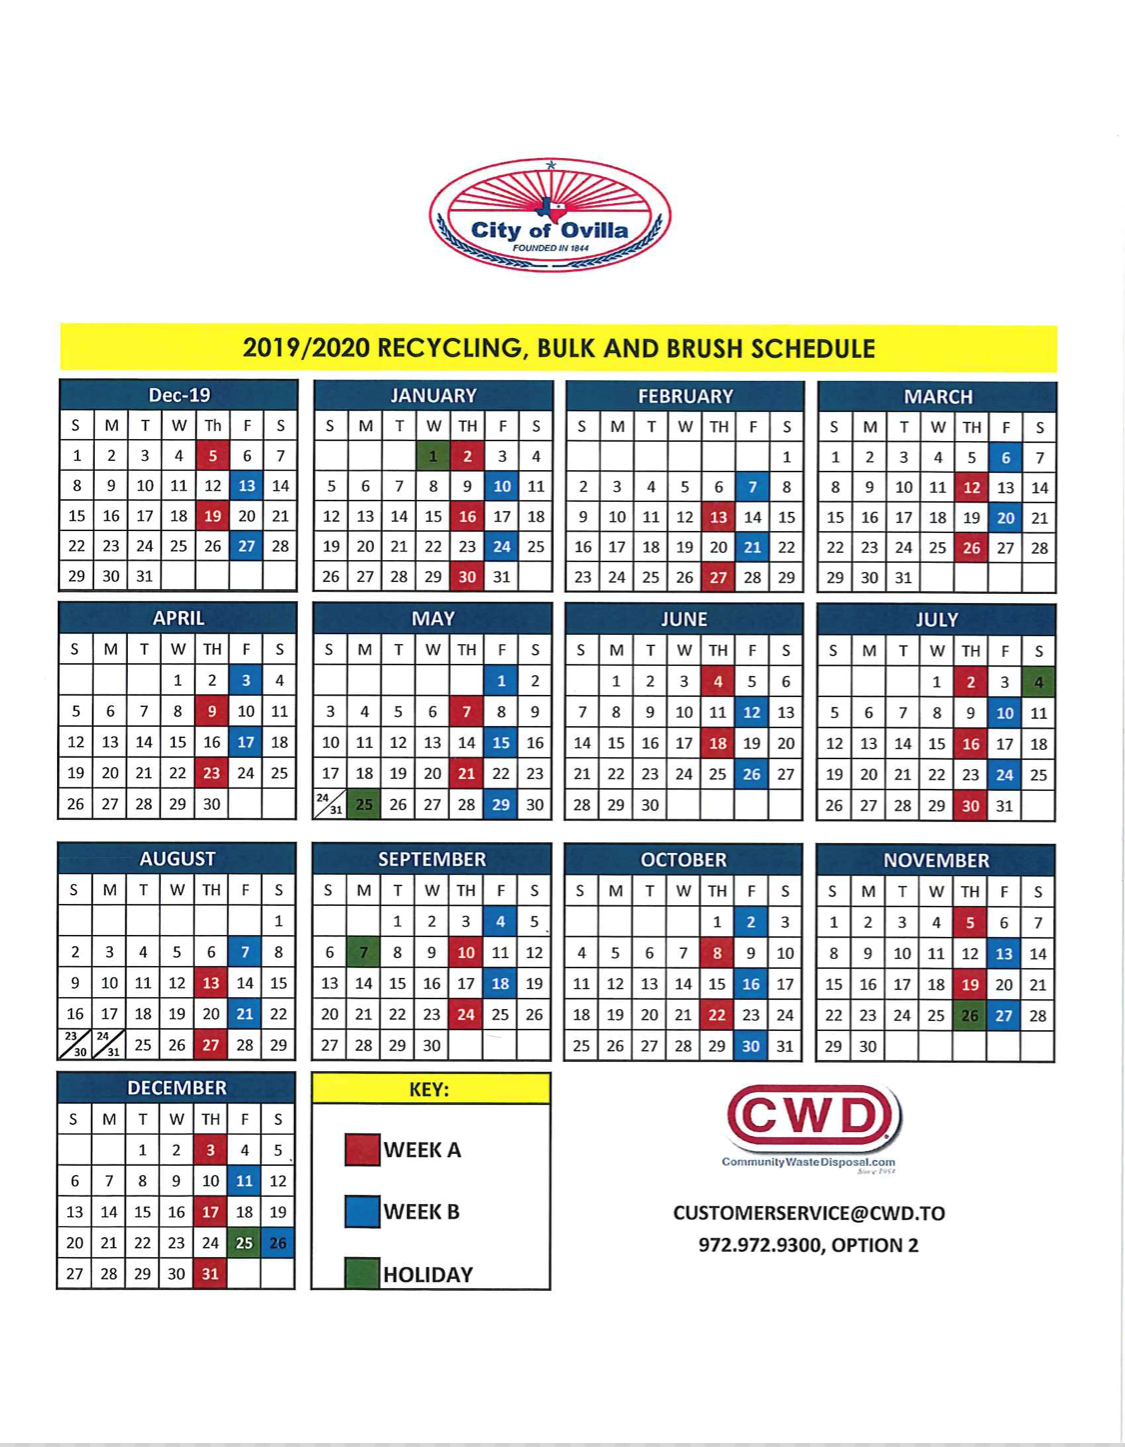 2019-2020 Recycling, Bulk and Brush Schedule